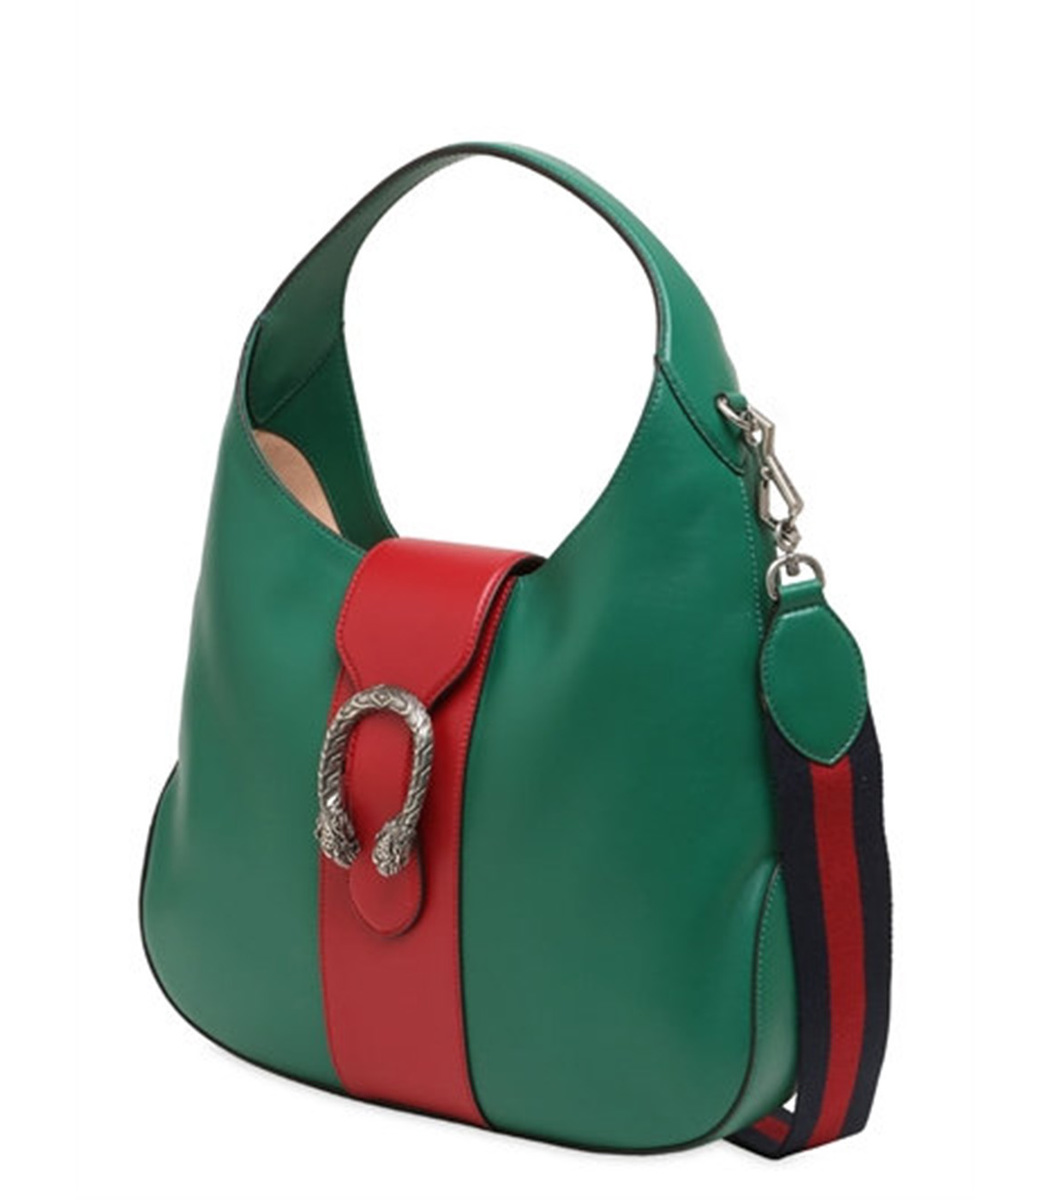 Gucci Dionysus Medium Leather Hobo Bag - Green One Interior Zip ...